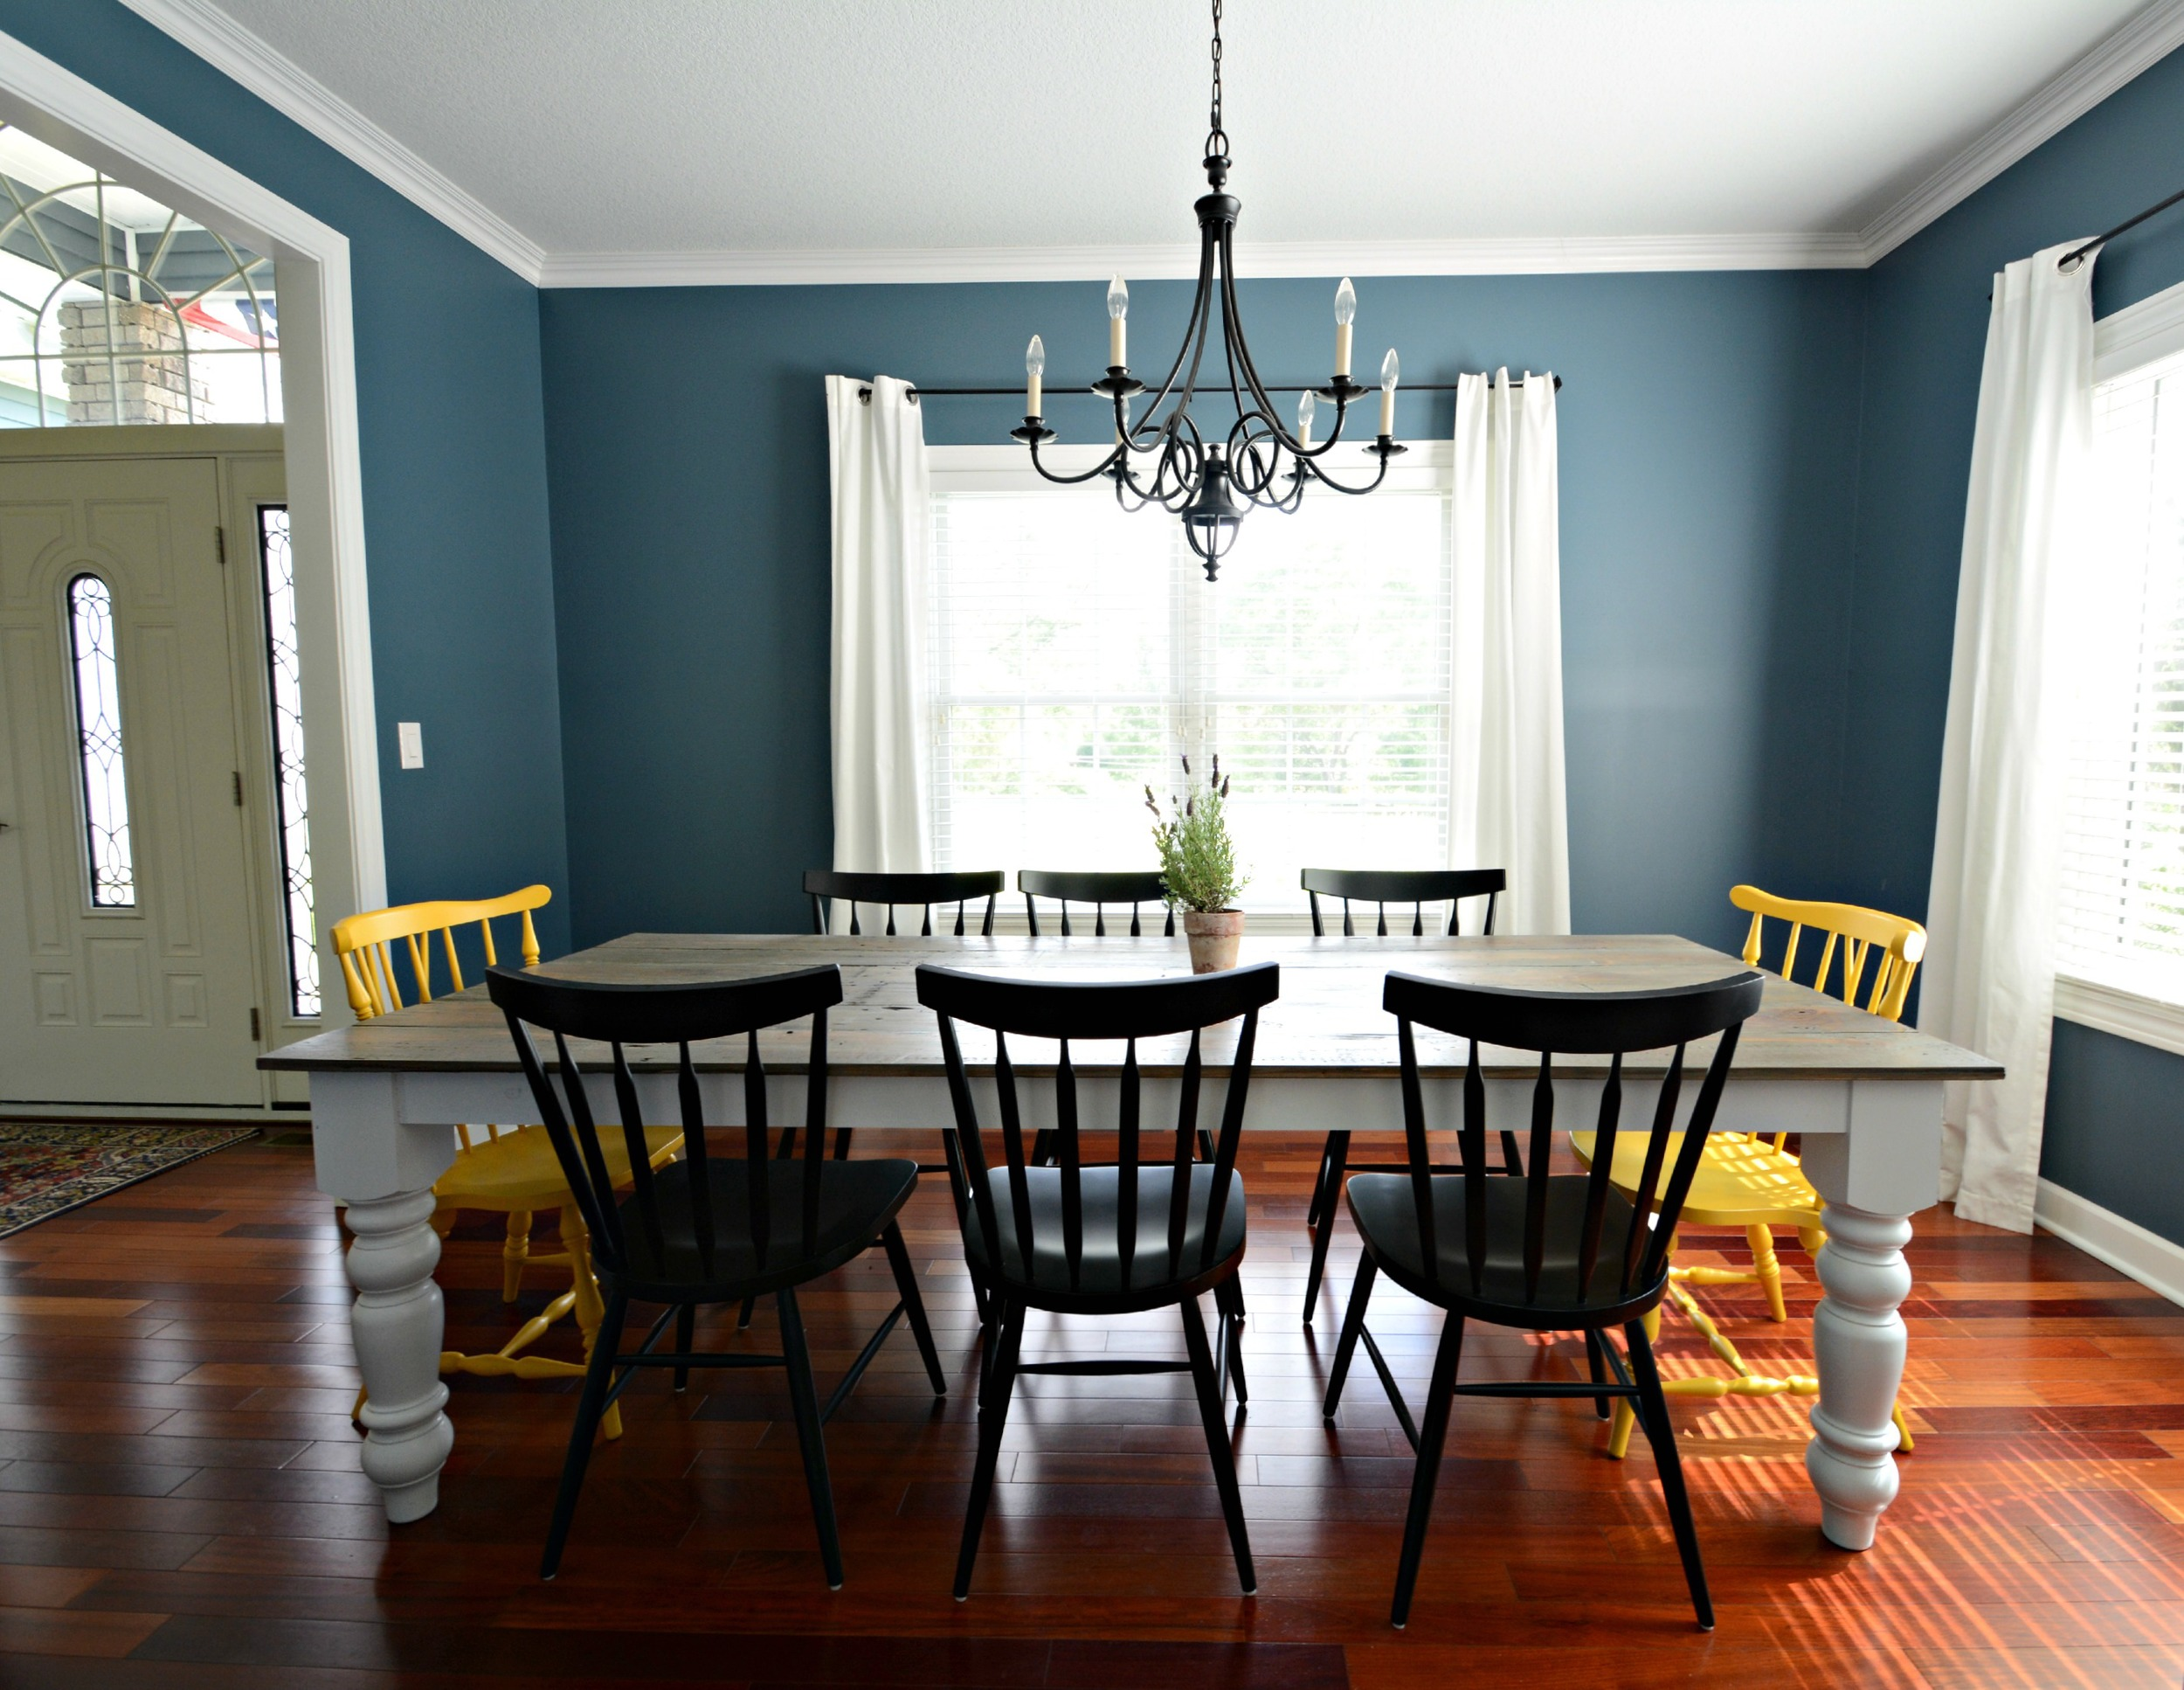 Then and Now - Dining Room